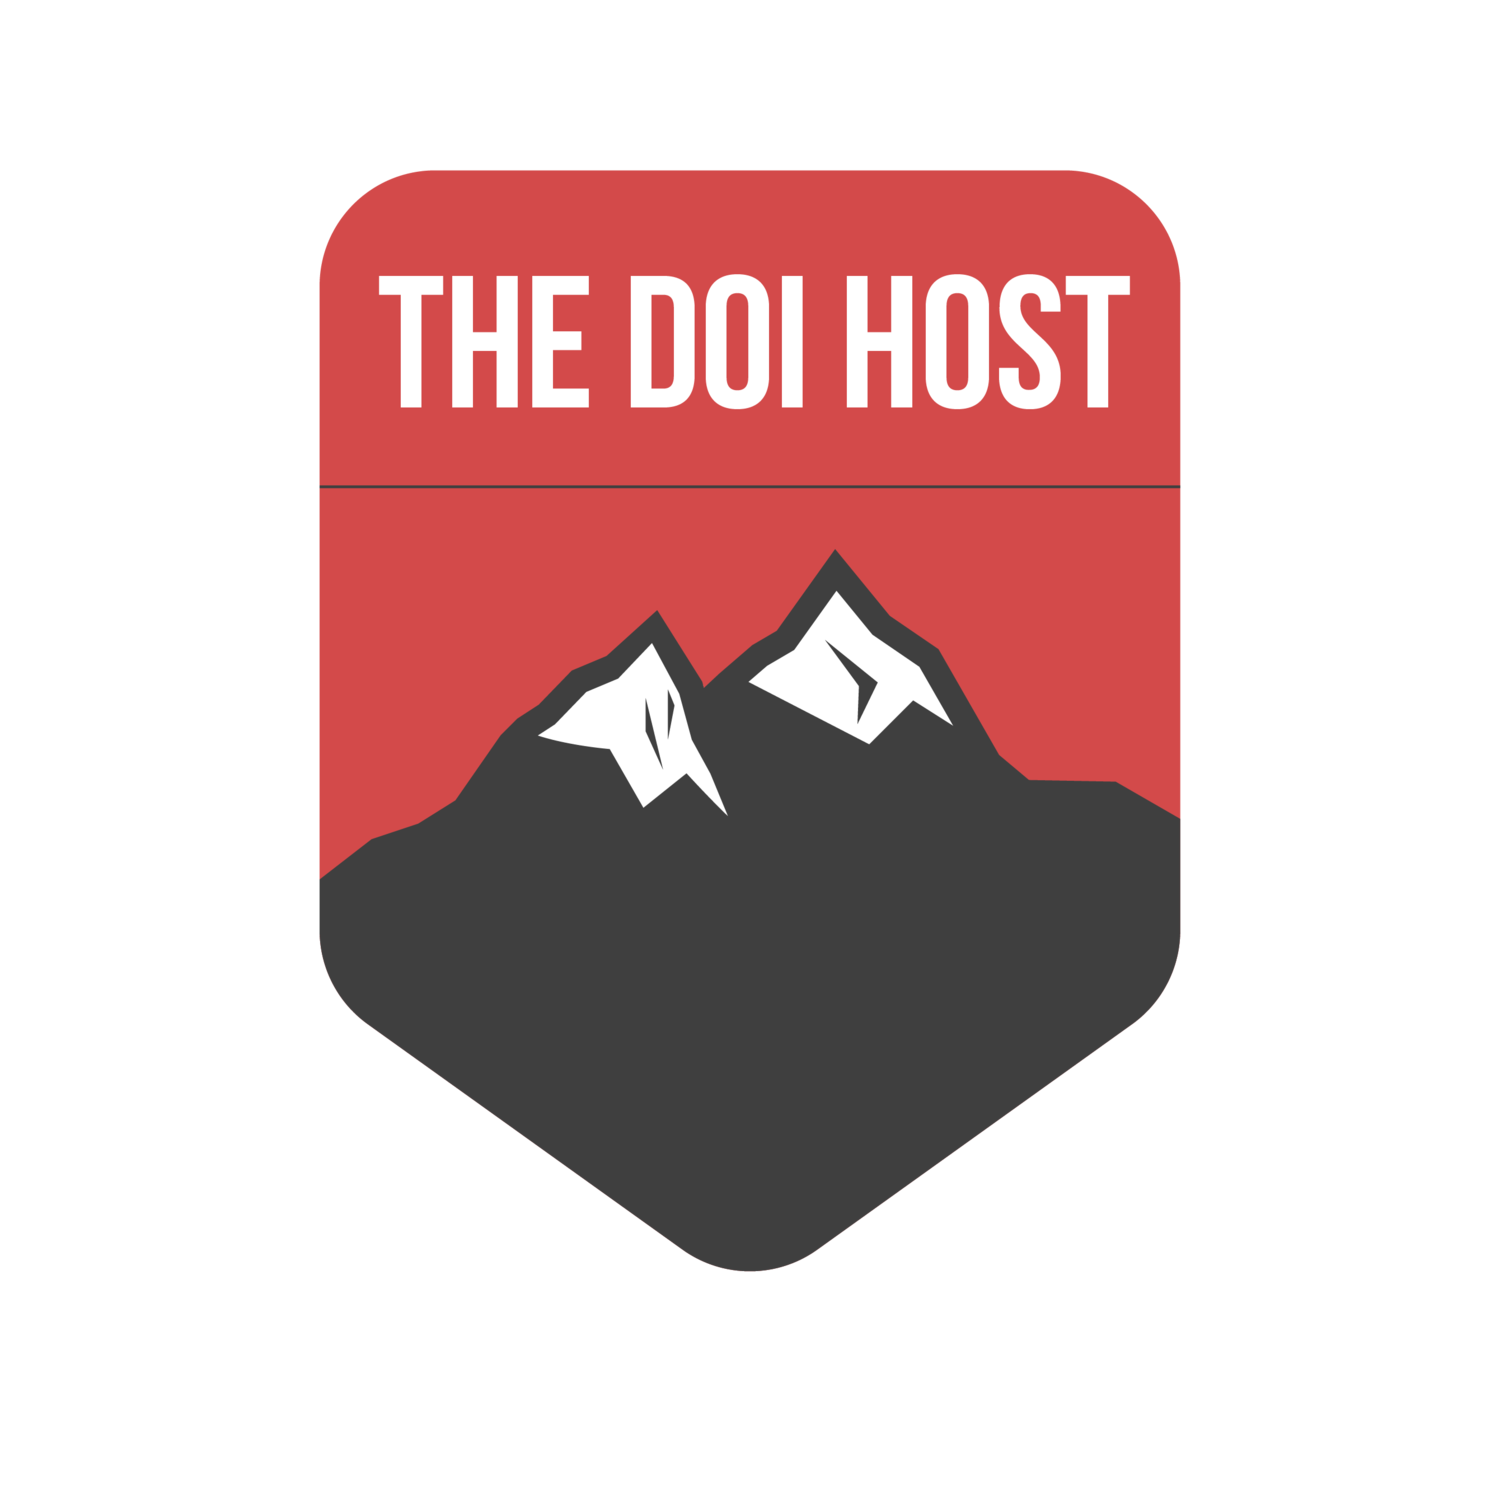 The Doi Host